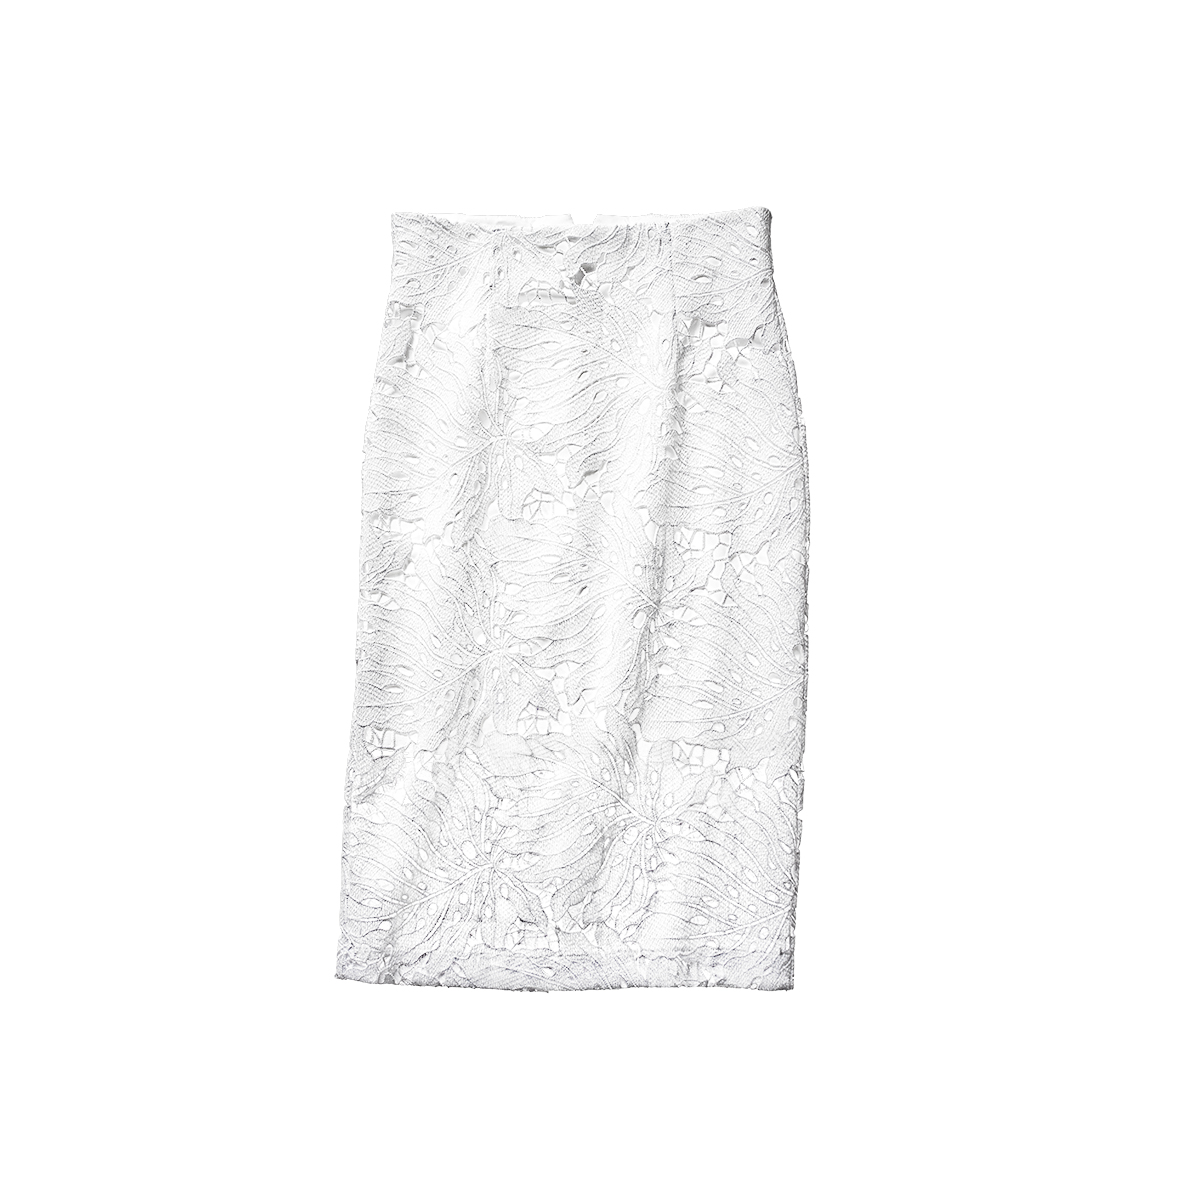 Eva Mendes Collection at New York & Company Skirt